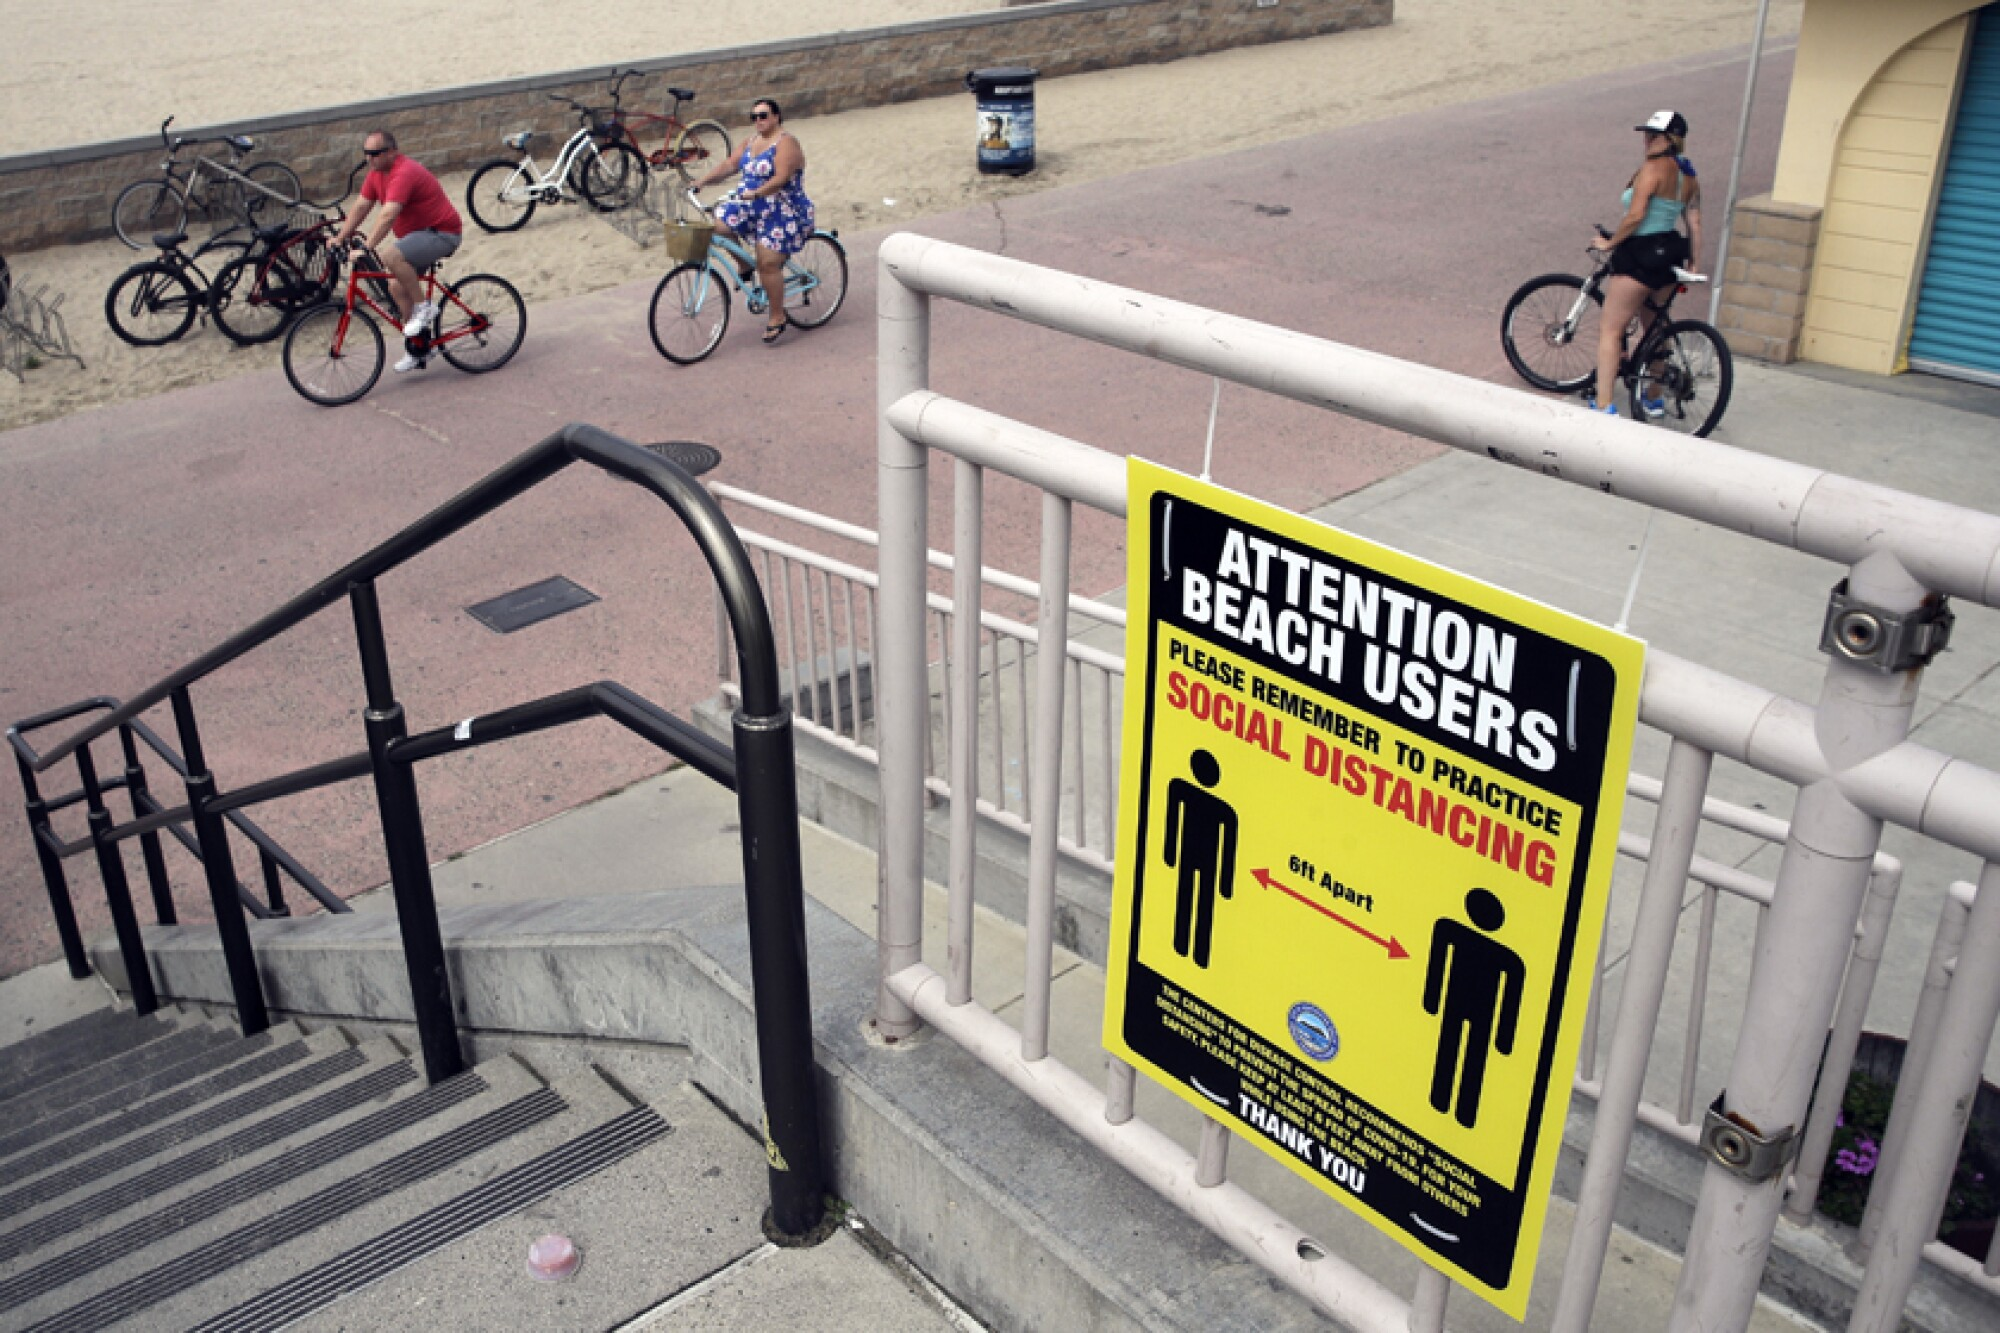 A sign in Huntington Beach encourages people to practice social distancing.